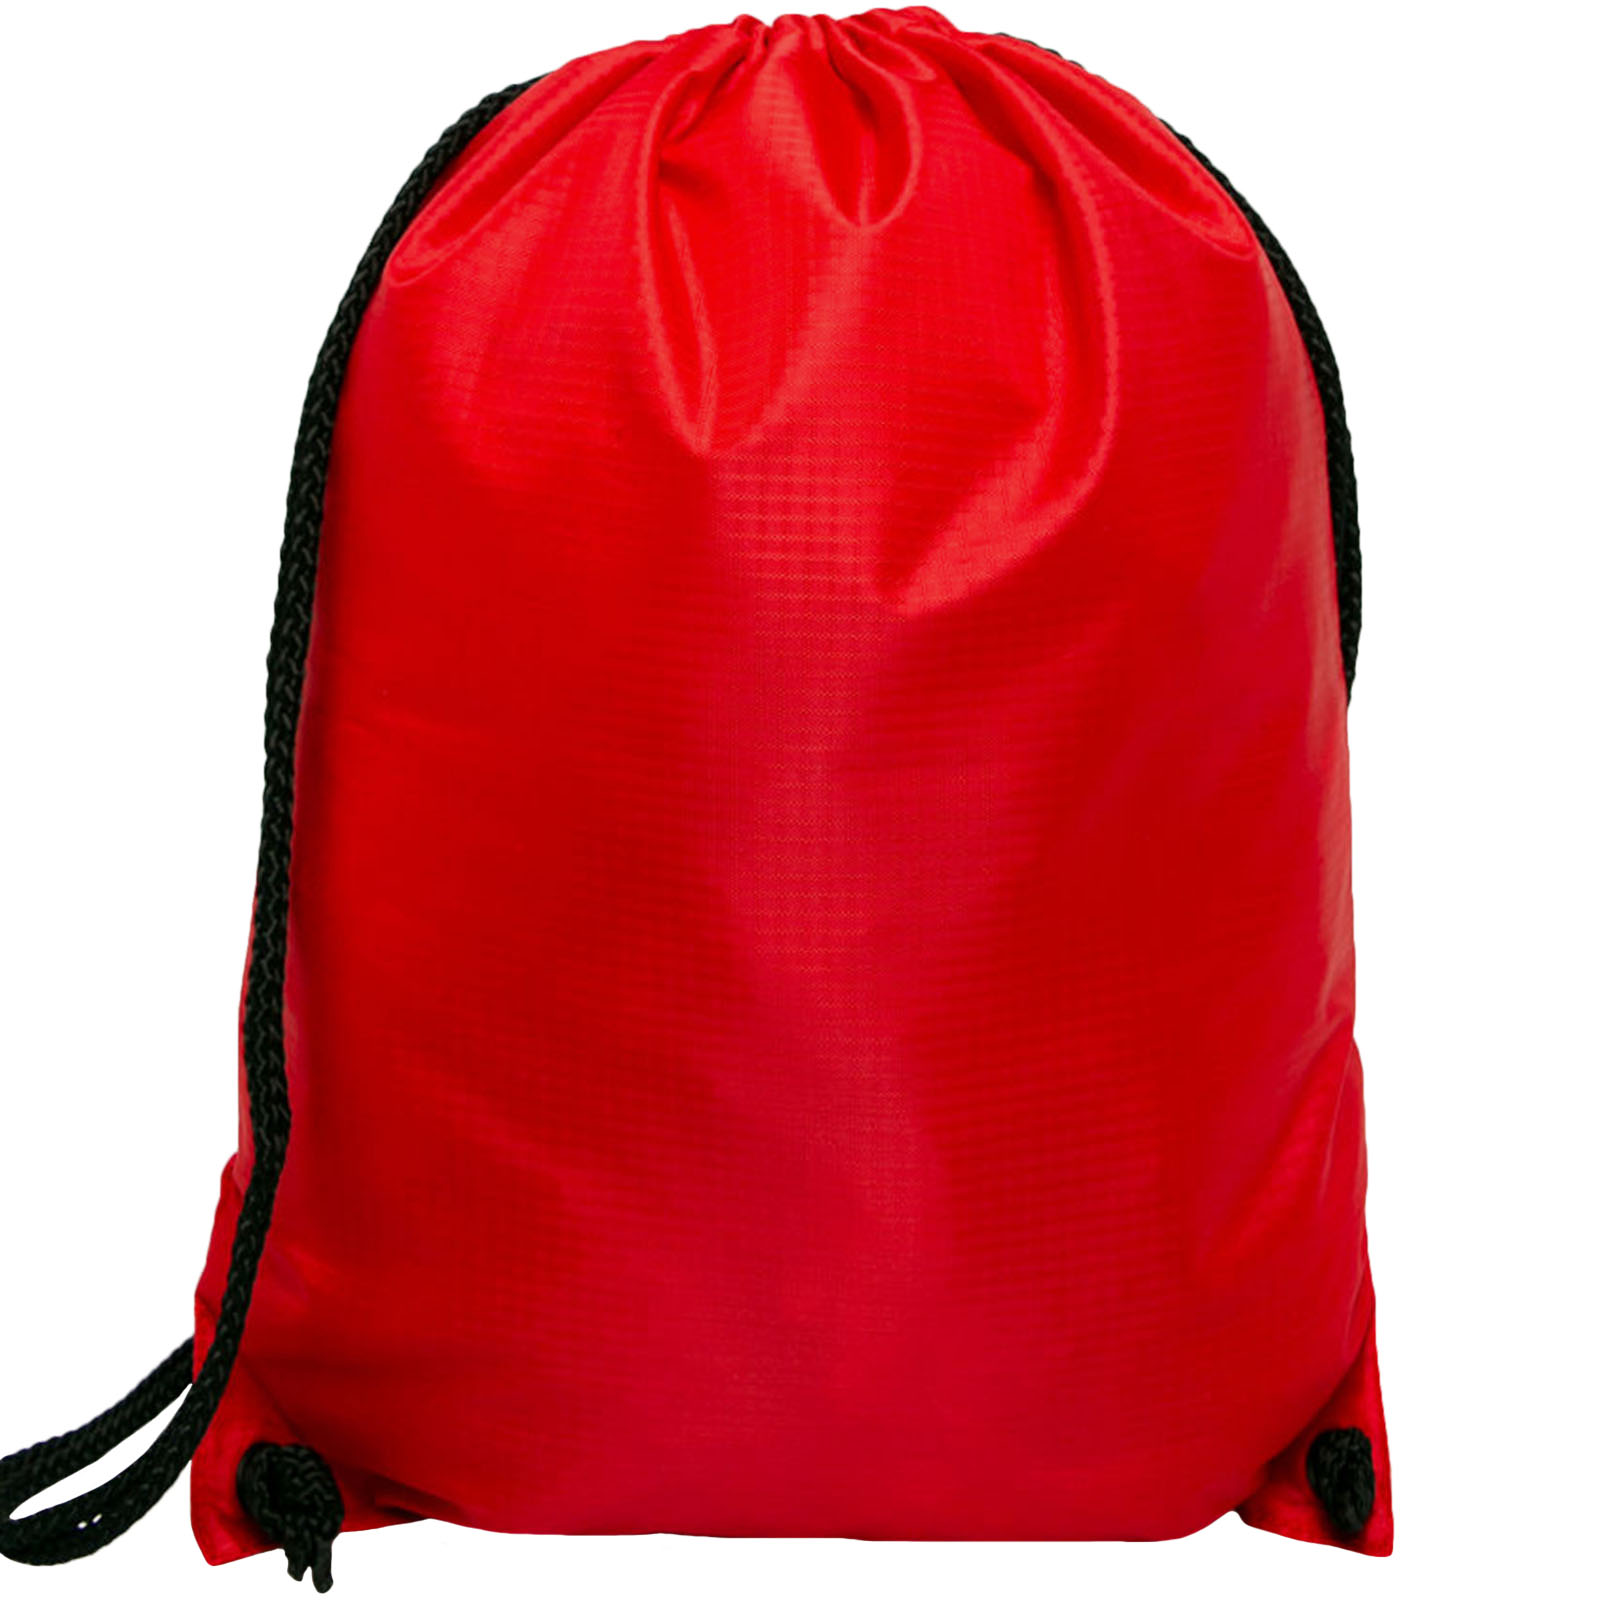 thumbnail 5 - Vans Unisex Benched Travel Sports Gym School Drawstring Cinched Backpack Bag